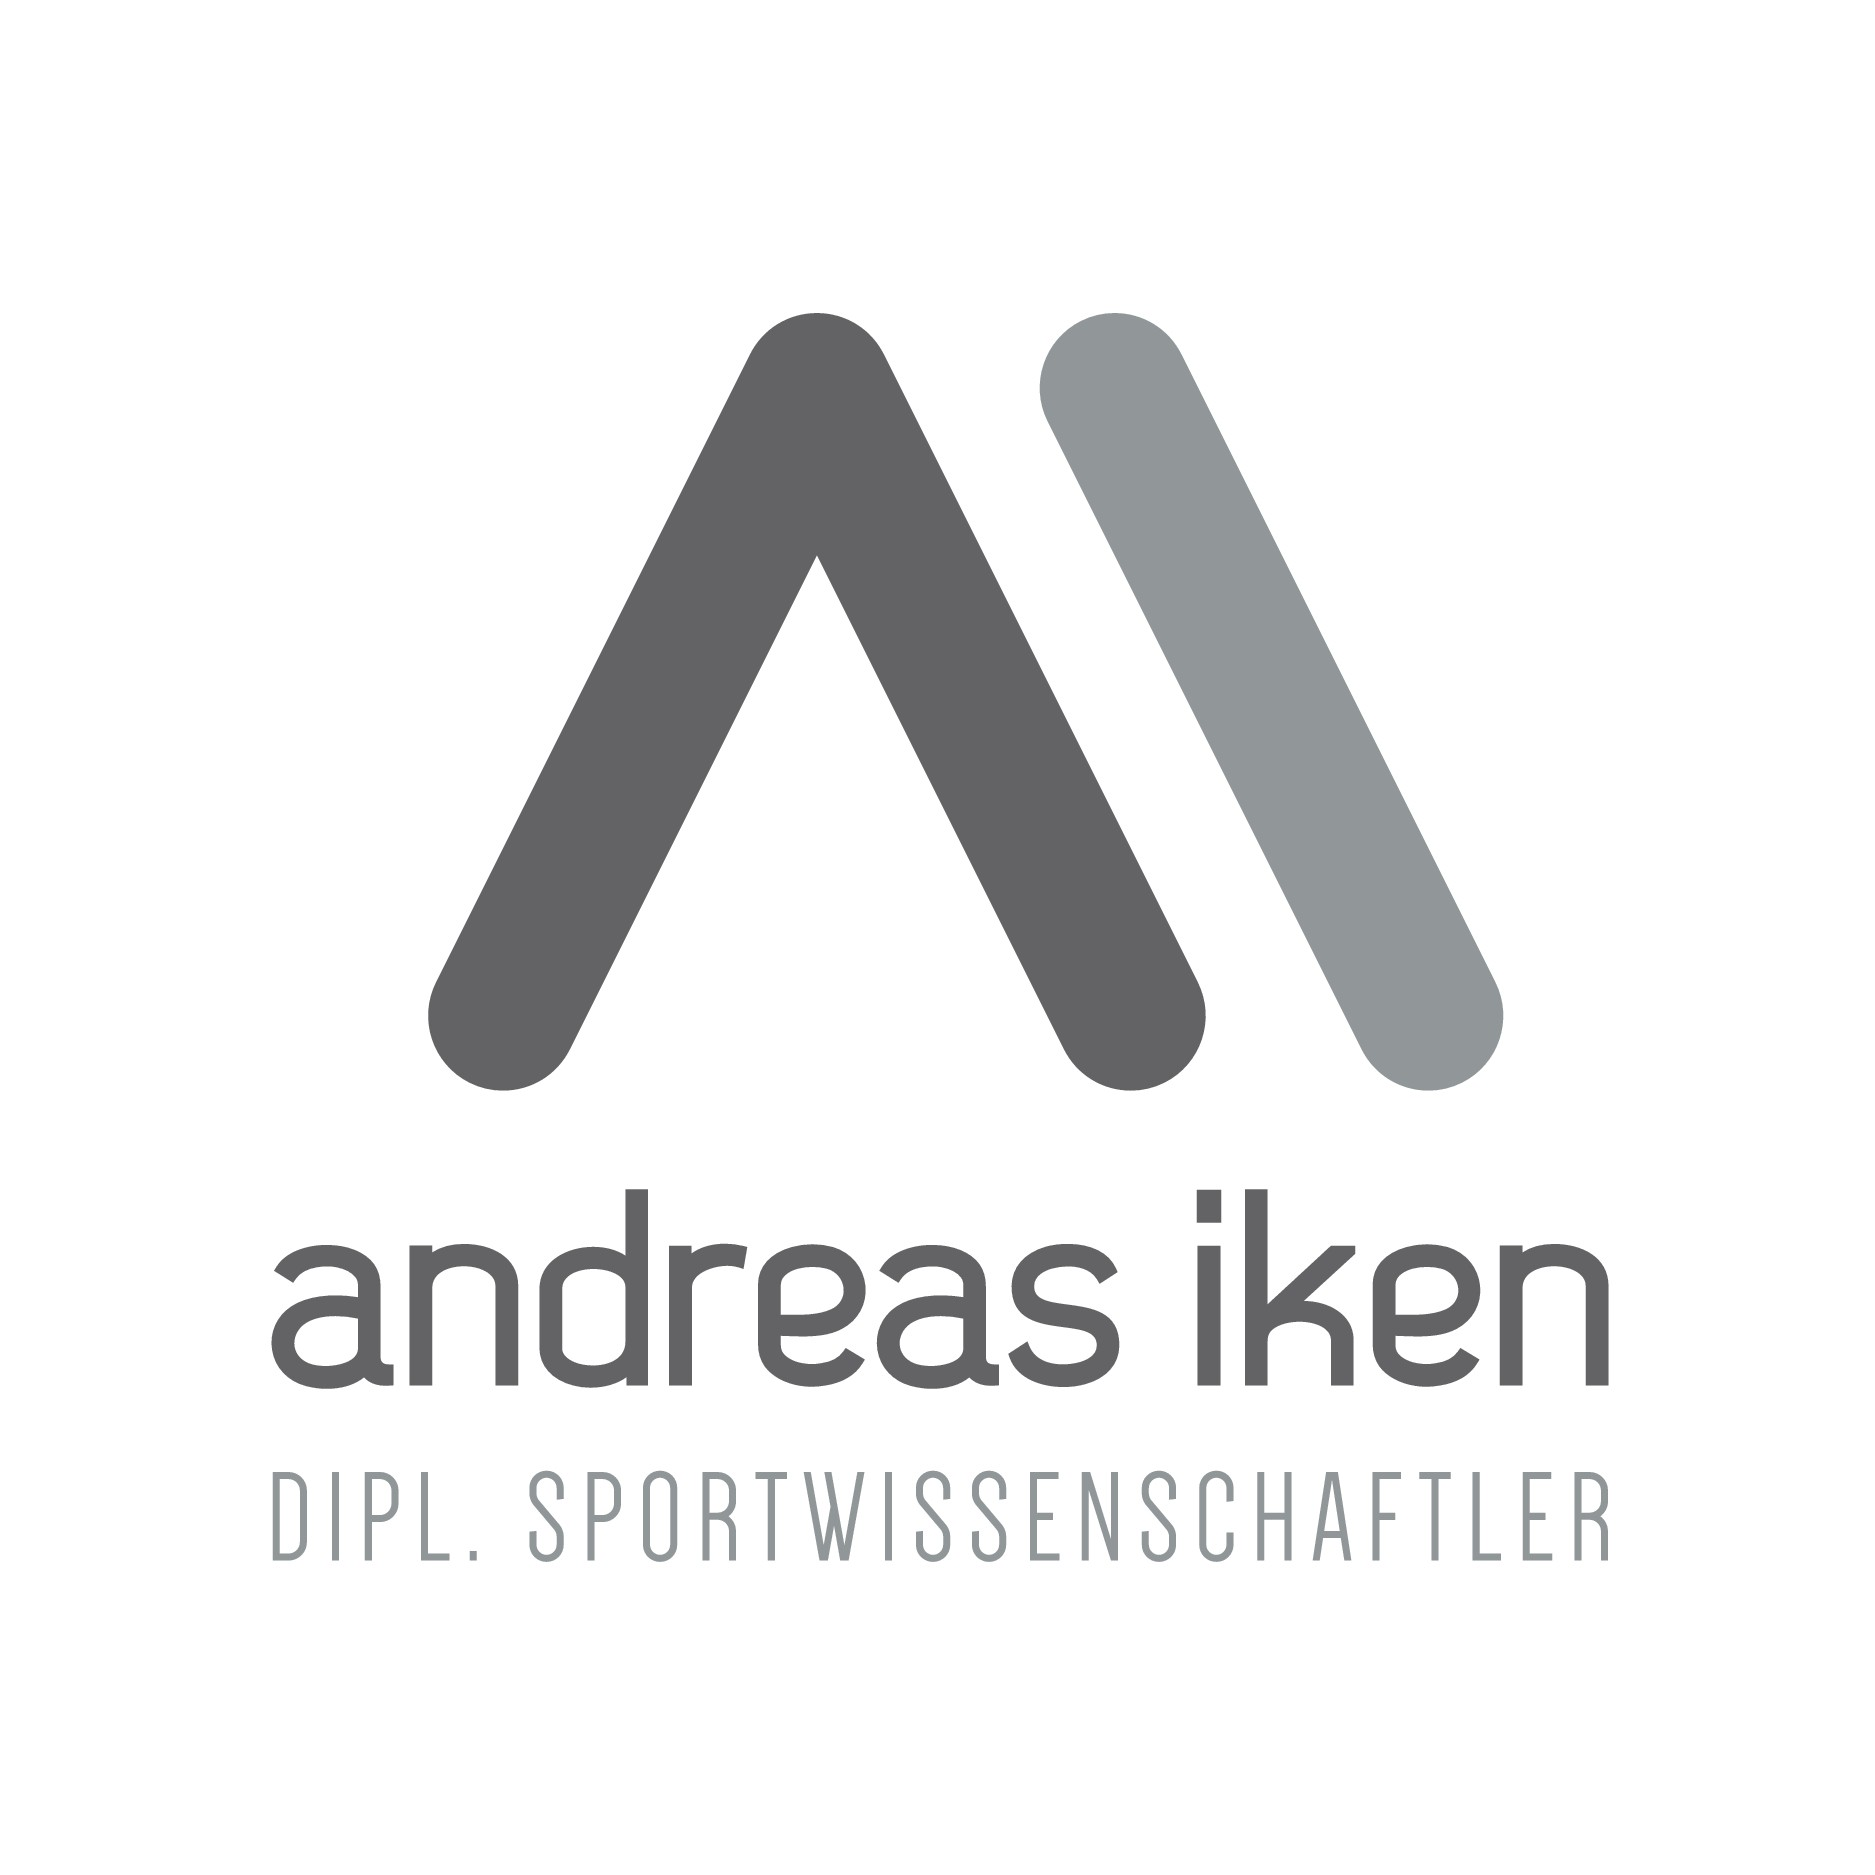 Create a memorable Corporate Design for a Personal Fitness Coach from Northern German